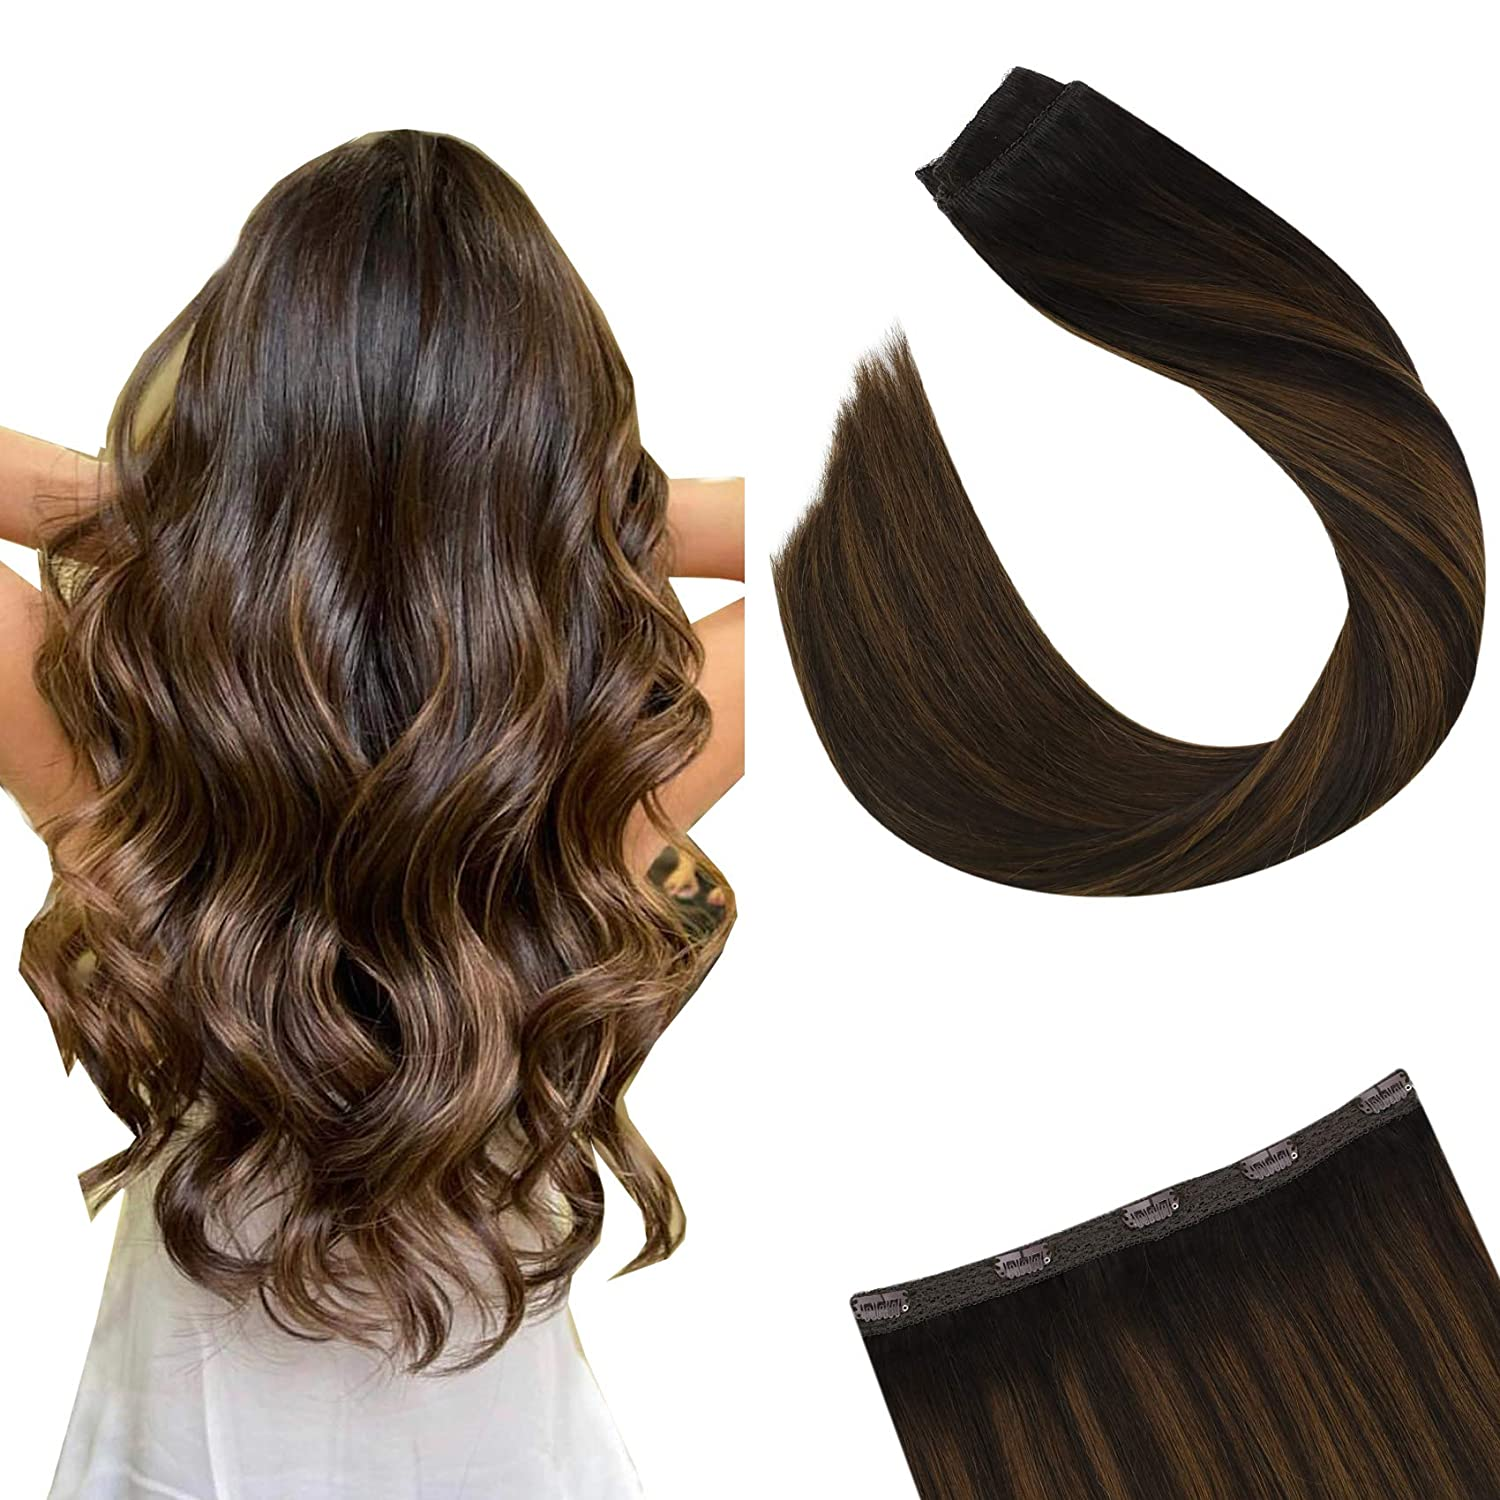 Ugeat Clip in Hair Extensions One Piece 50Gram Human Hair Extensions Balayage Color 2/6/2 14-24